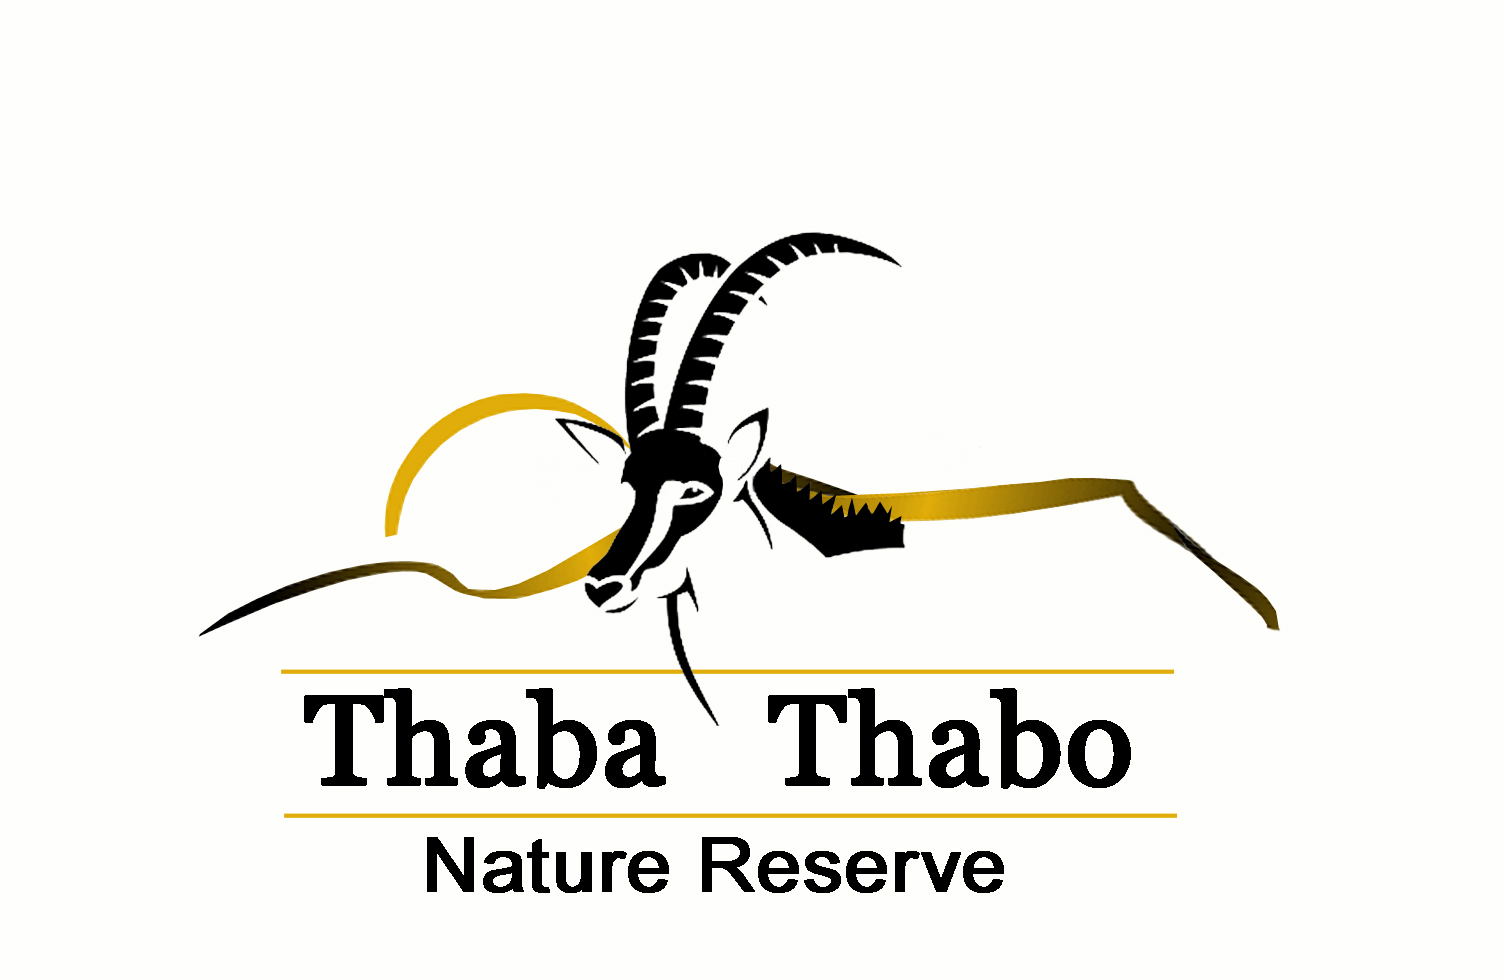 Thaba Thabo Nature Reserve